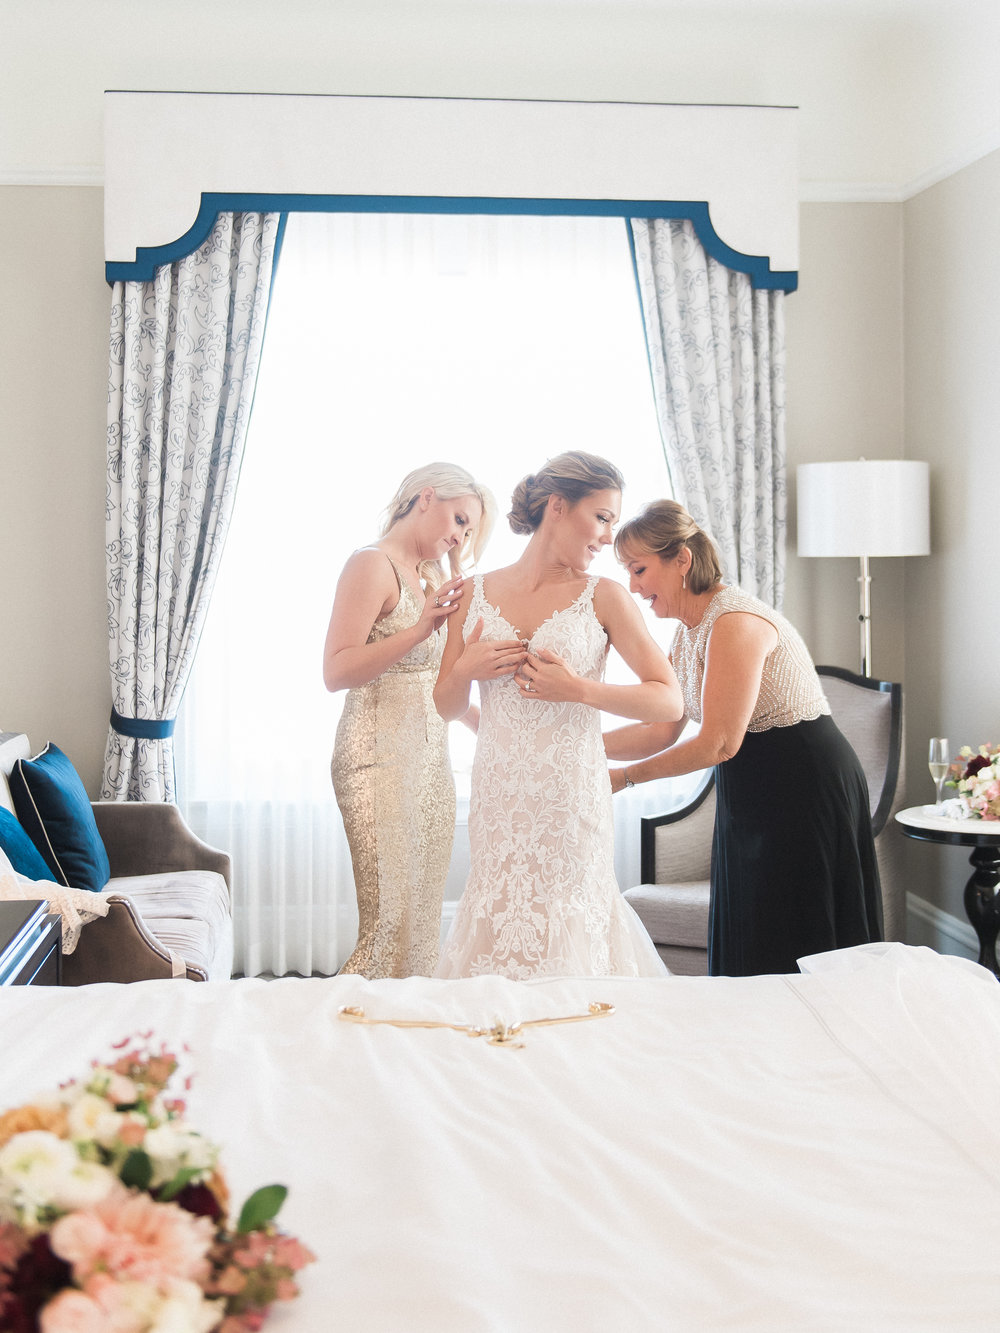 Katie+Nick_wedding_spp-blog-7.jpg